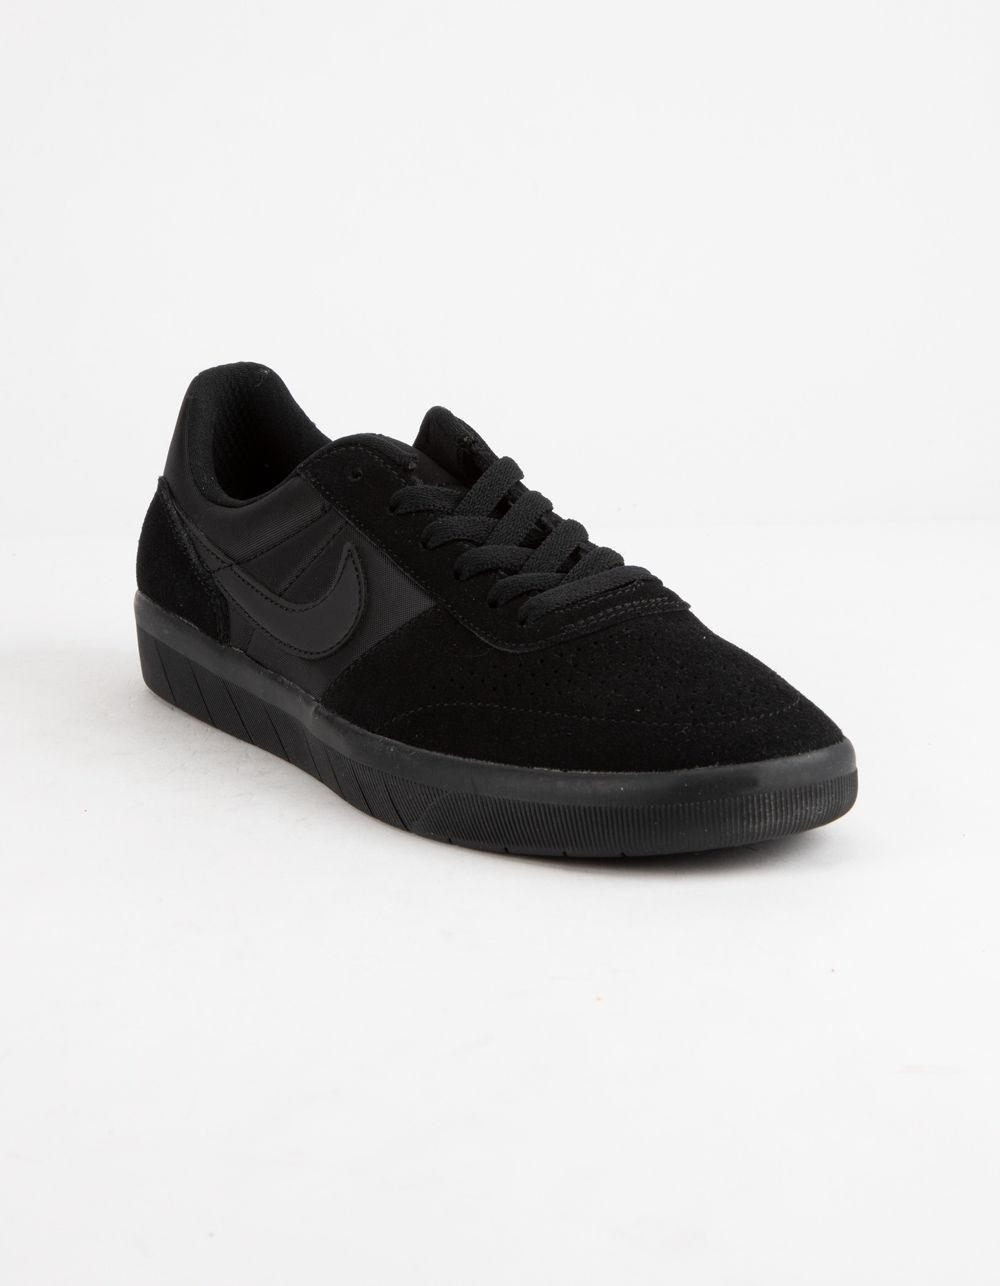 33b8c6df Lyst - Nike Team Classic Black & Anthracite Shoes in Black for Men